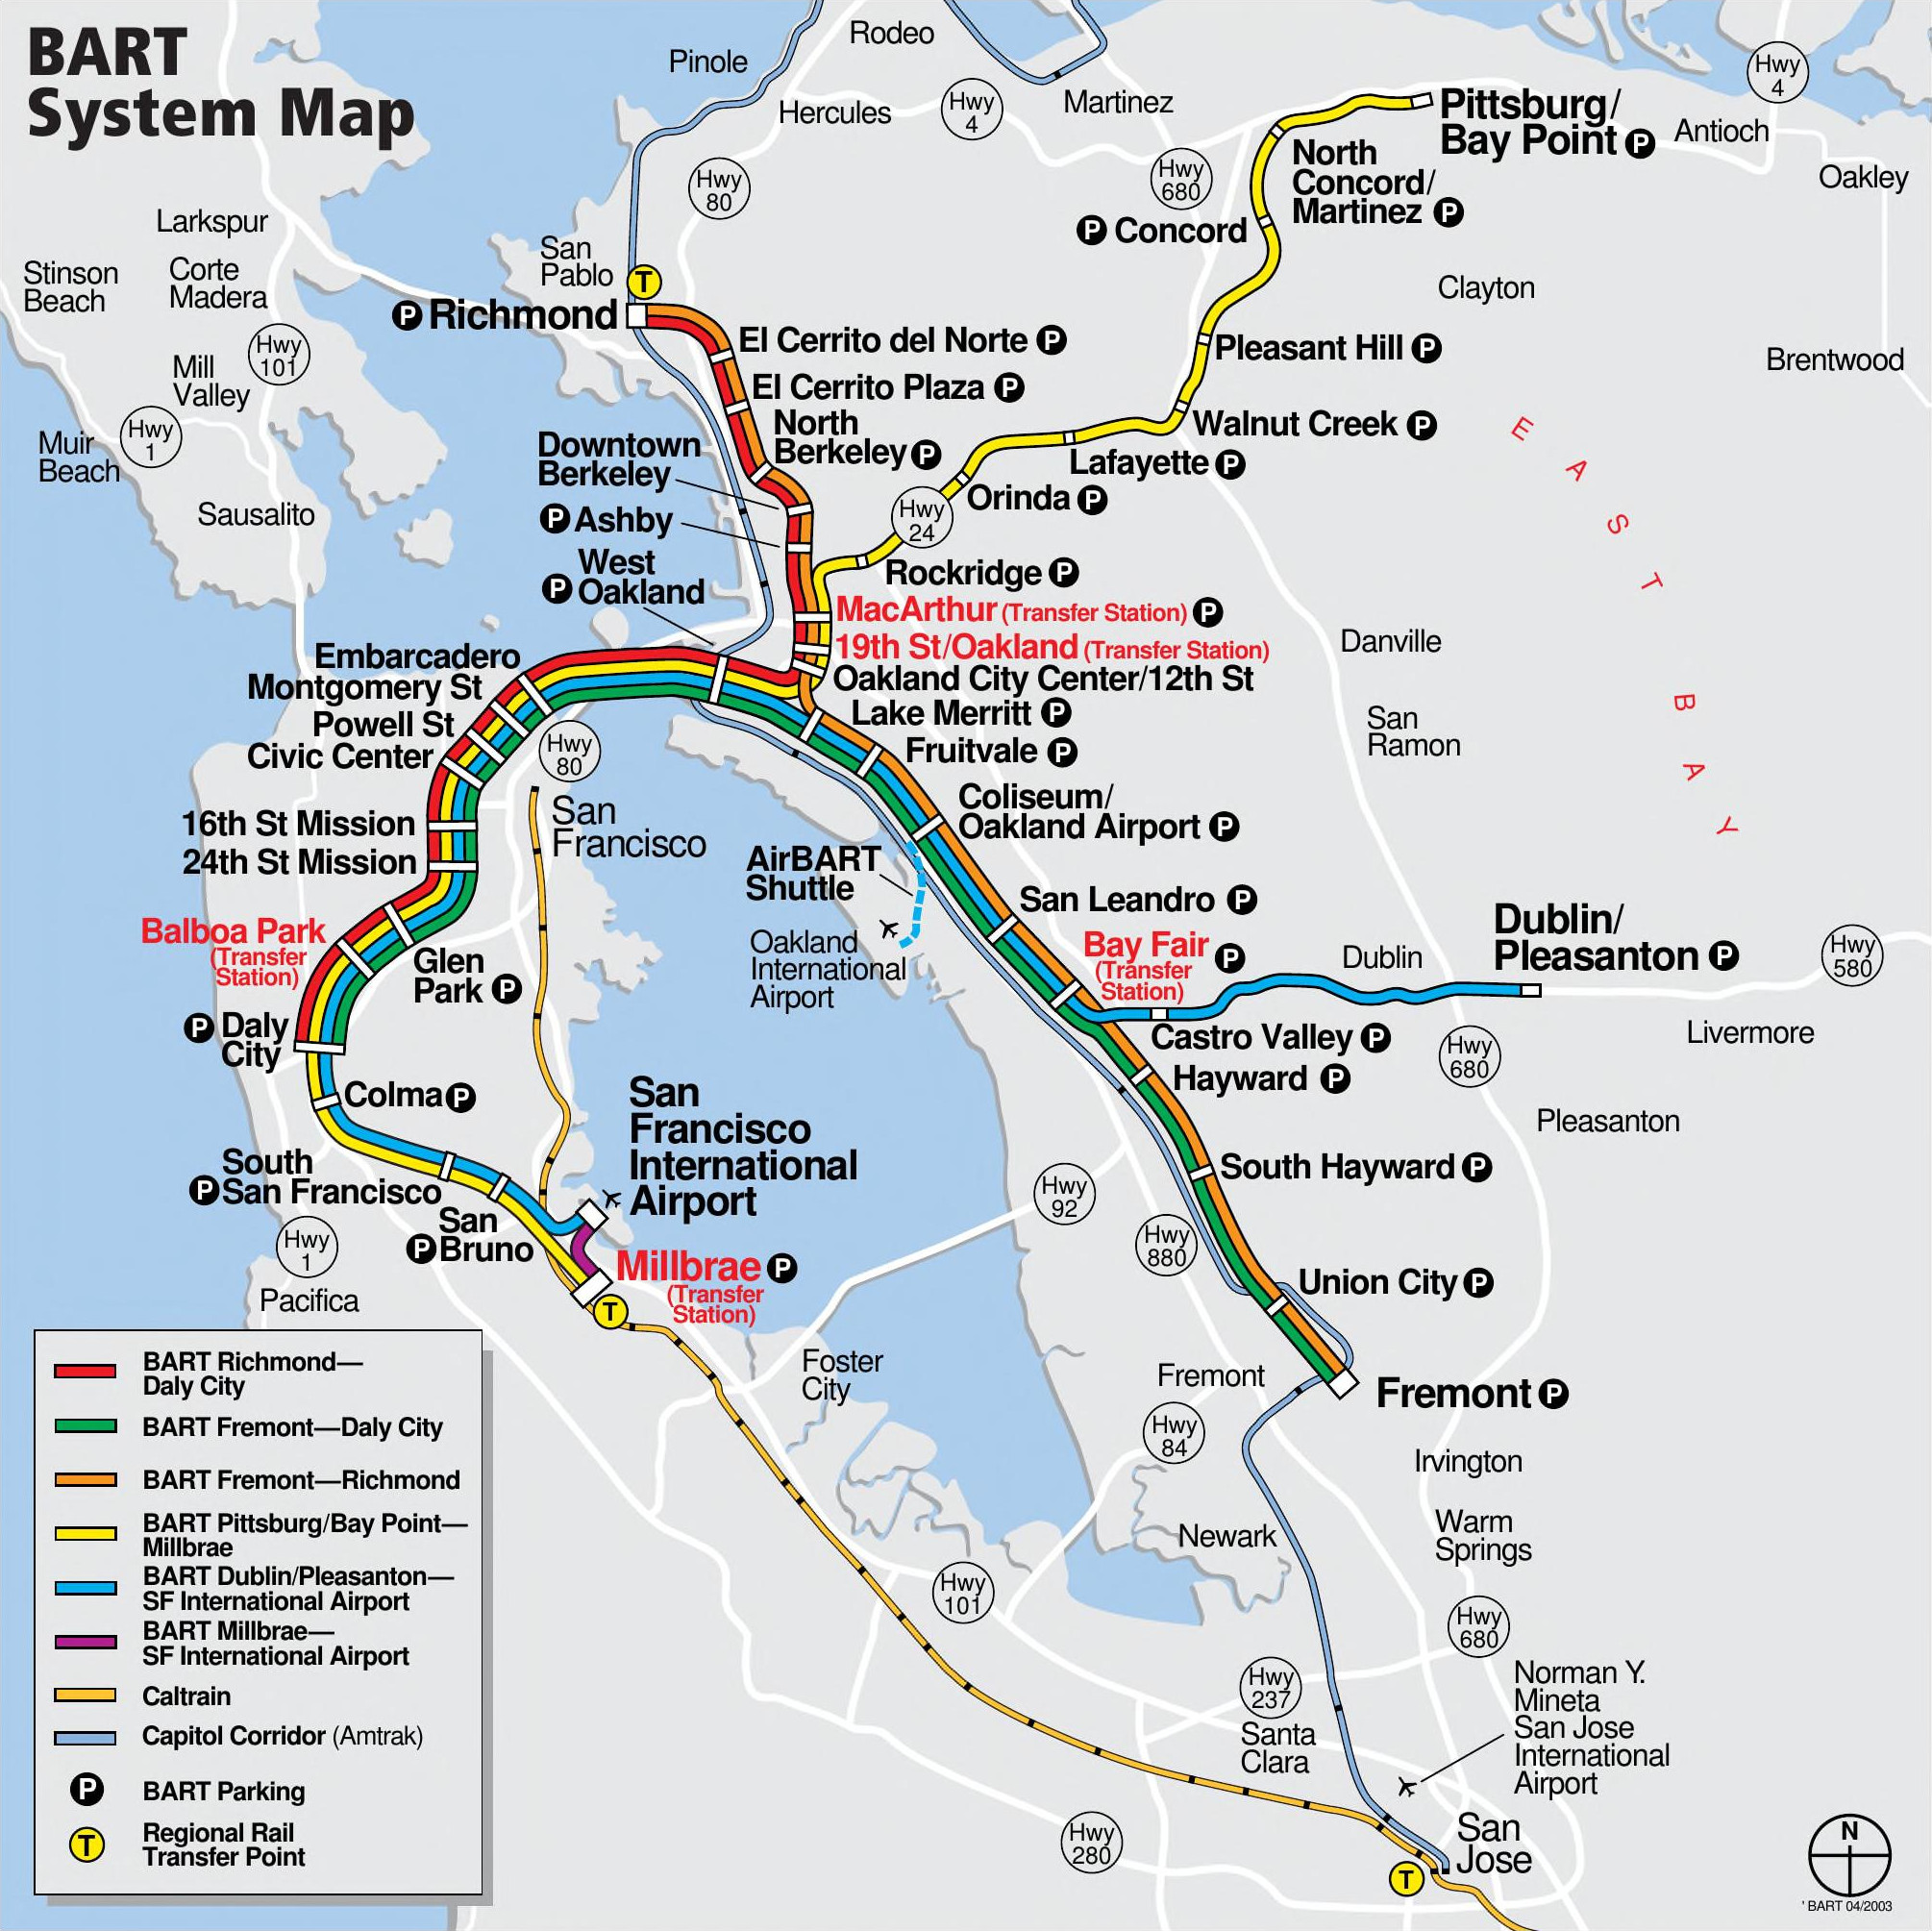 Bart System Map File:BART system map effective June 2003.   Wikimedia Commons Bart System Map